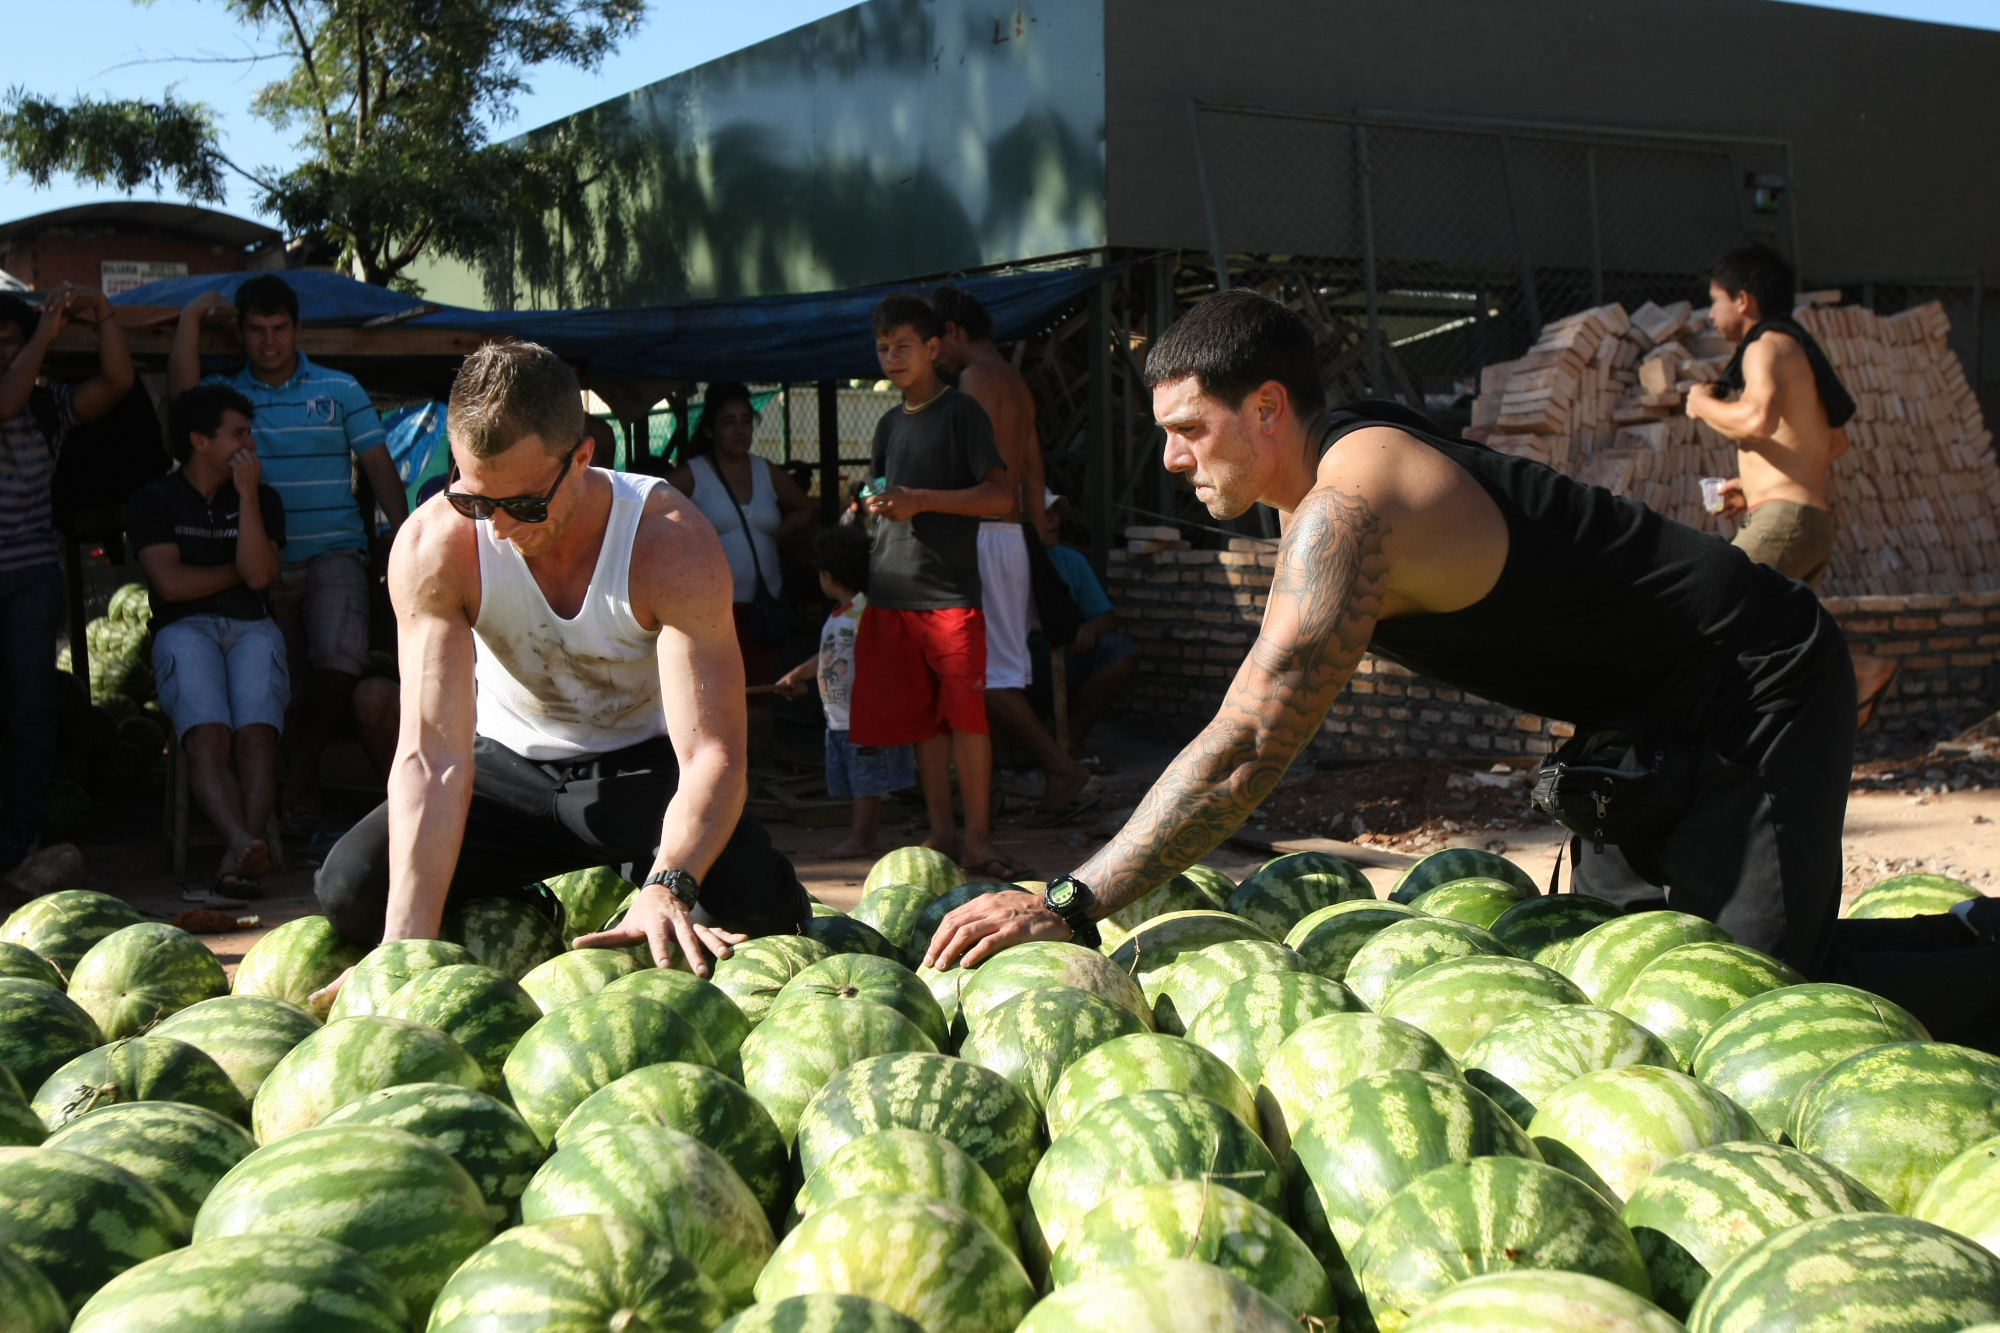 Stacking Watermelons